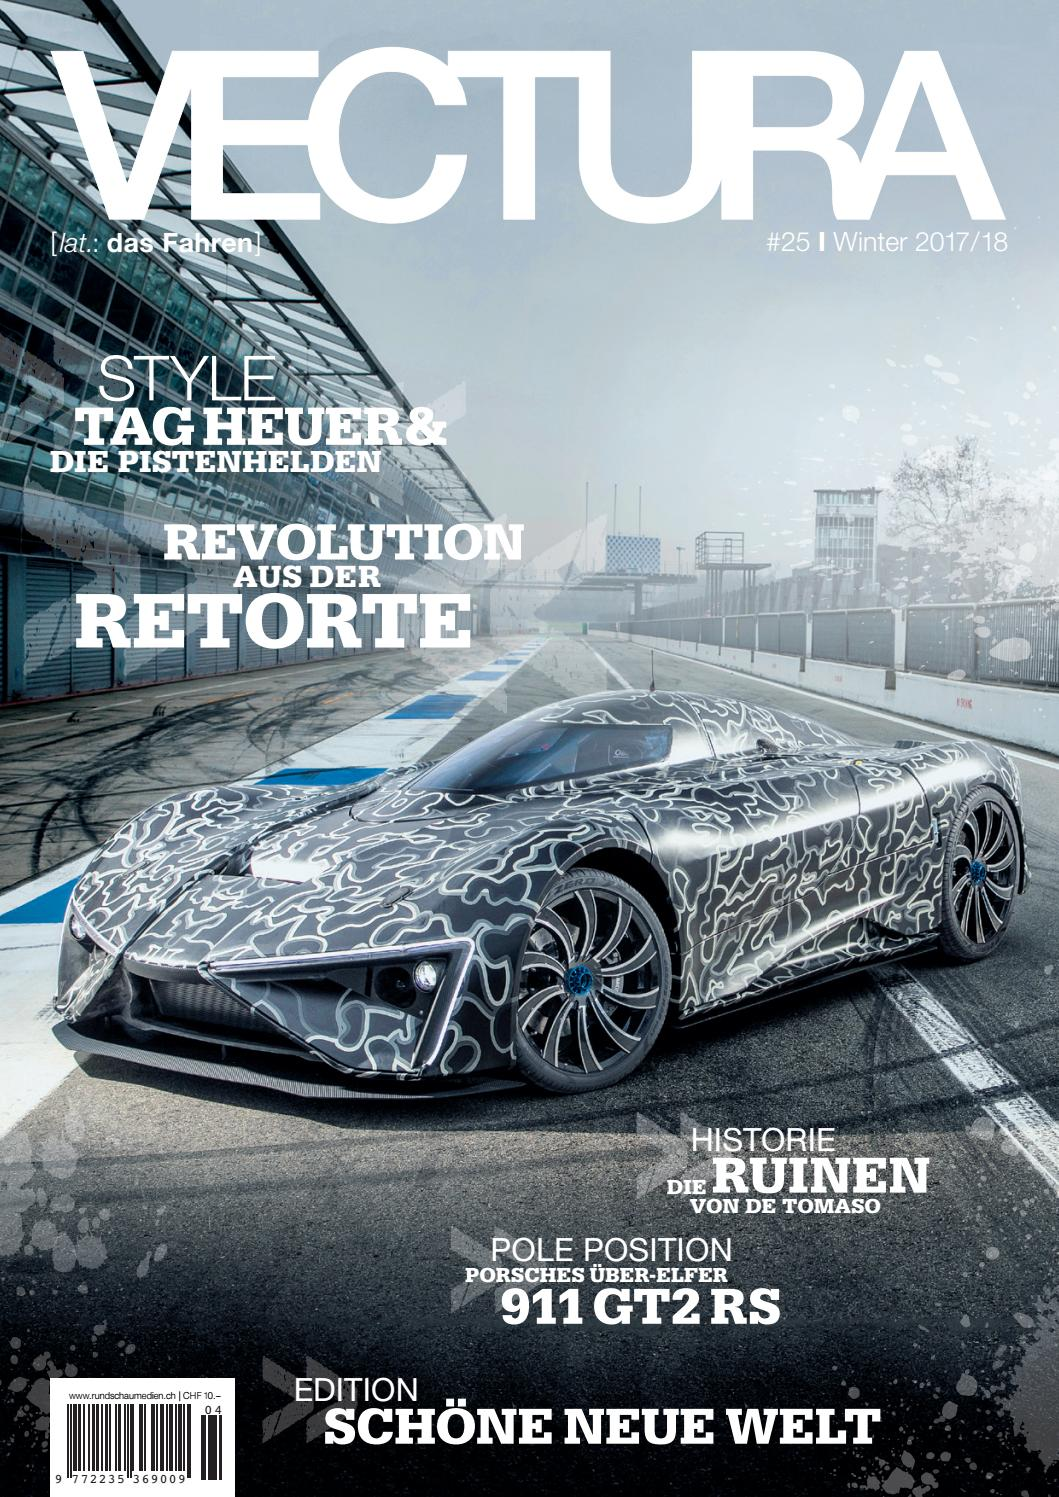 VECTURA #25 by rundschauMEDIEN AG - issuu